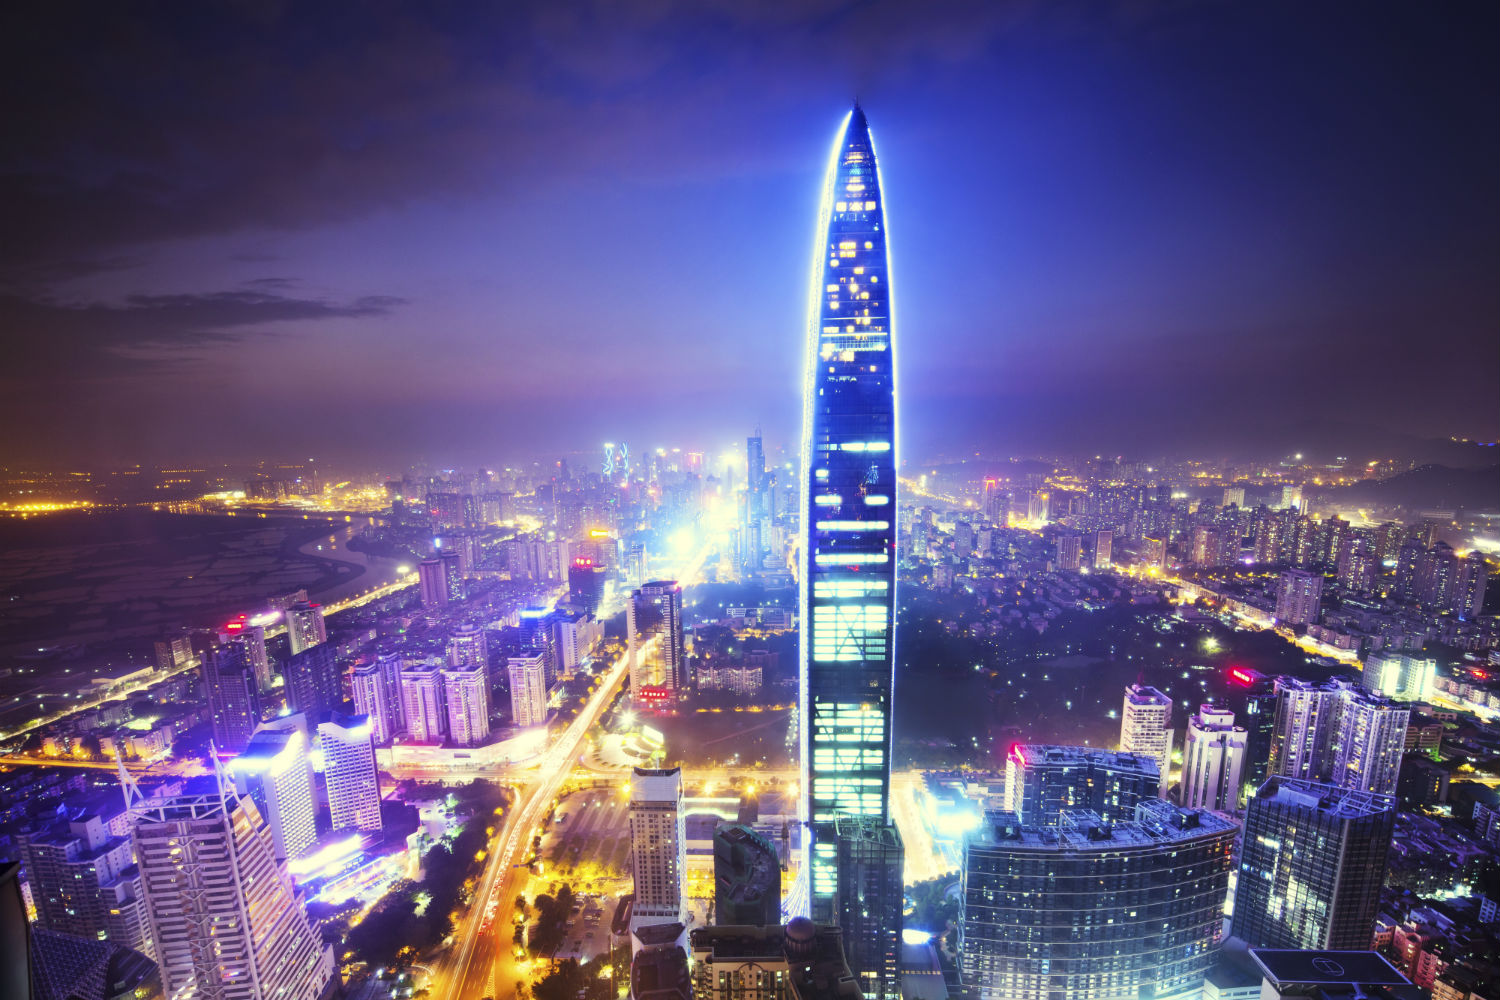 Shenzhen is an ultra-modern city of 14 million people located in southern China approximately 30 miles from Hong Kong.